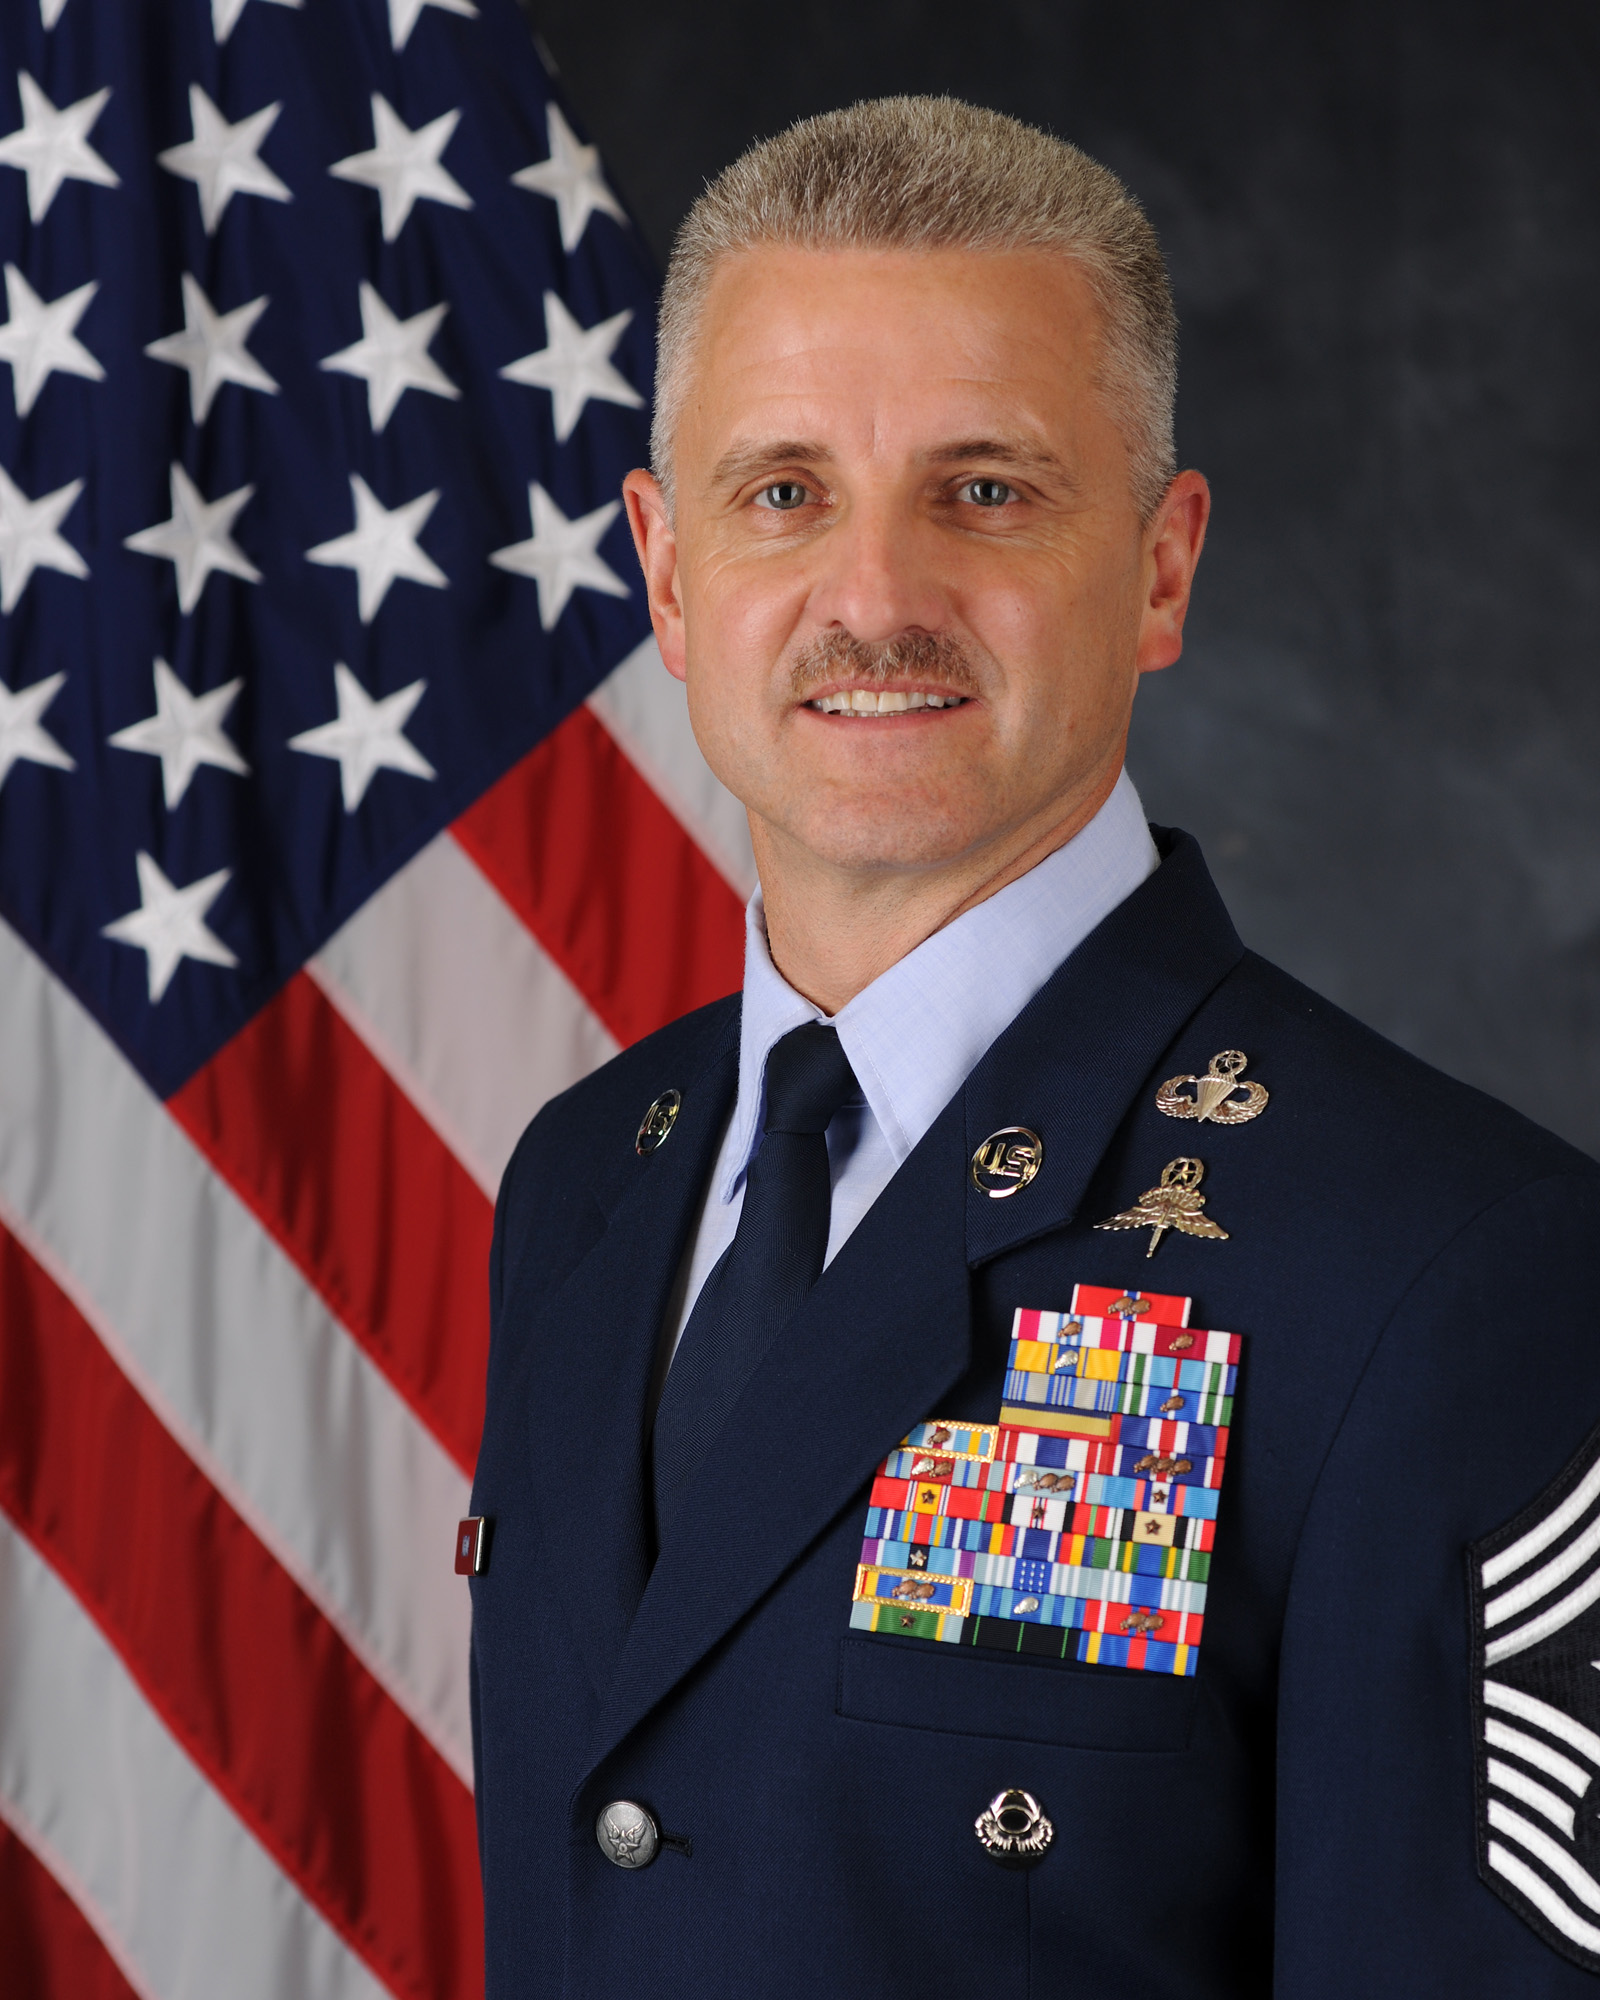 the responsibility of the chief master sergeants of the air force Jim finch hails from east hampton, new york and spent the vast majority of his adult life serving in the us air force he retired from active duty in 2002 after serving more than 28 years his final assignment was at the pentagon as the 13th chief master sergeant of the air force--the highest enlisted level of leadership.